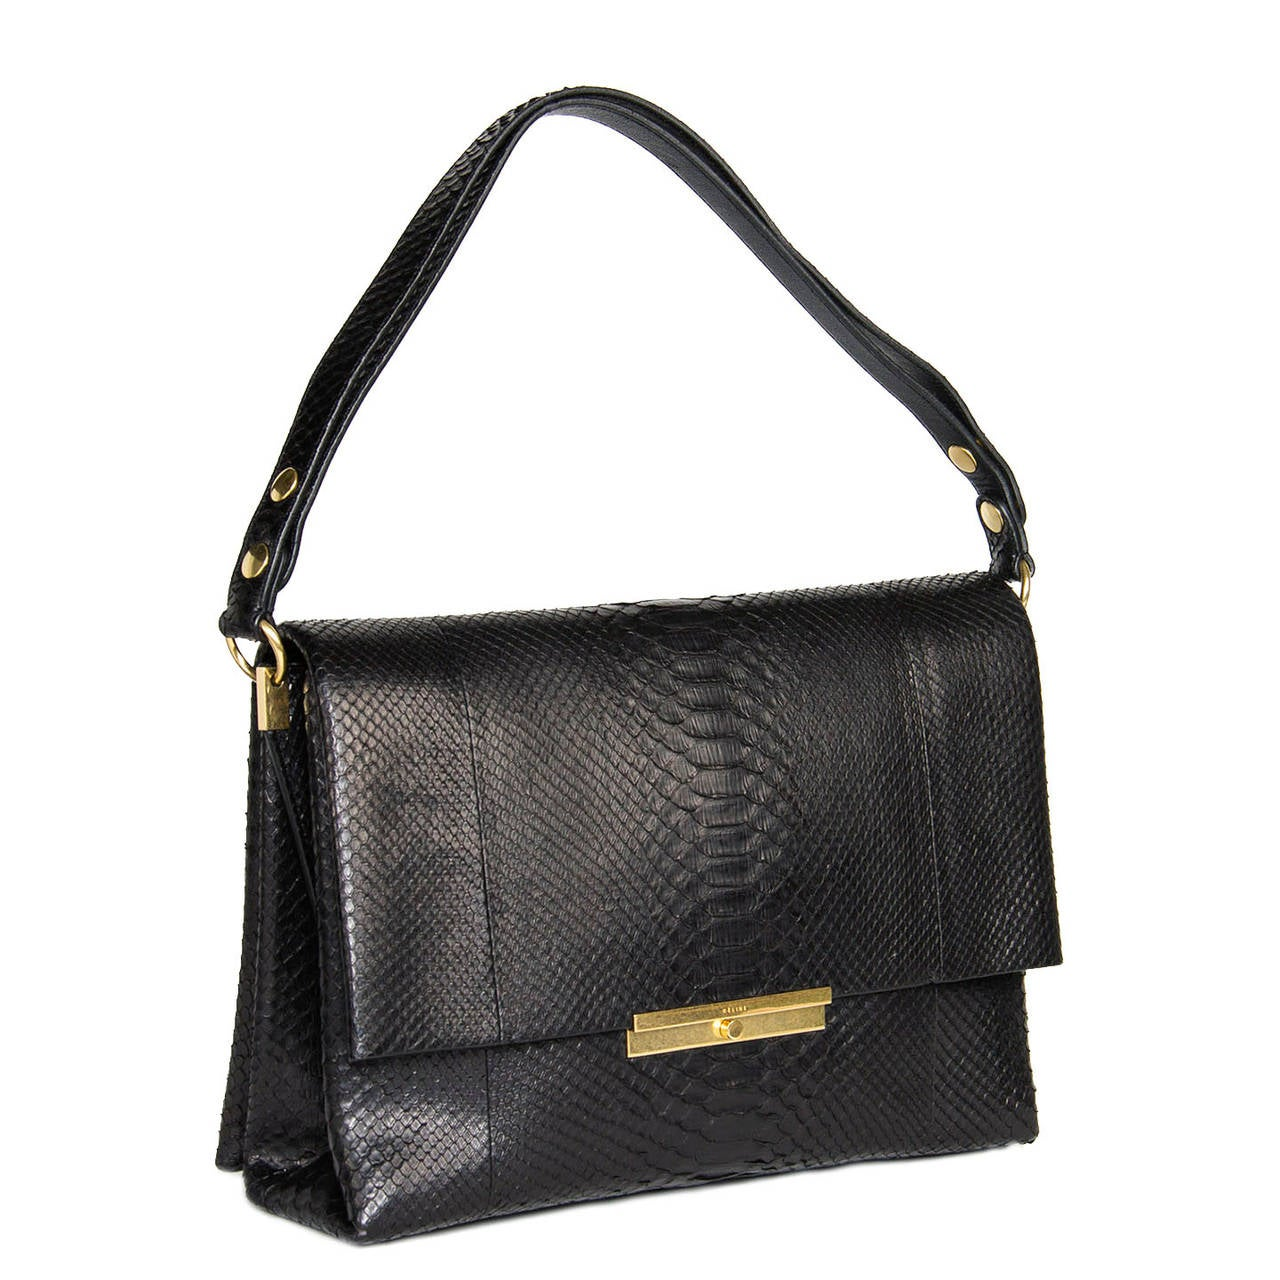 Celine Black Snake Skin Bag 2